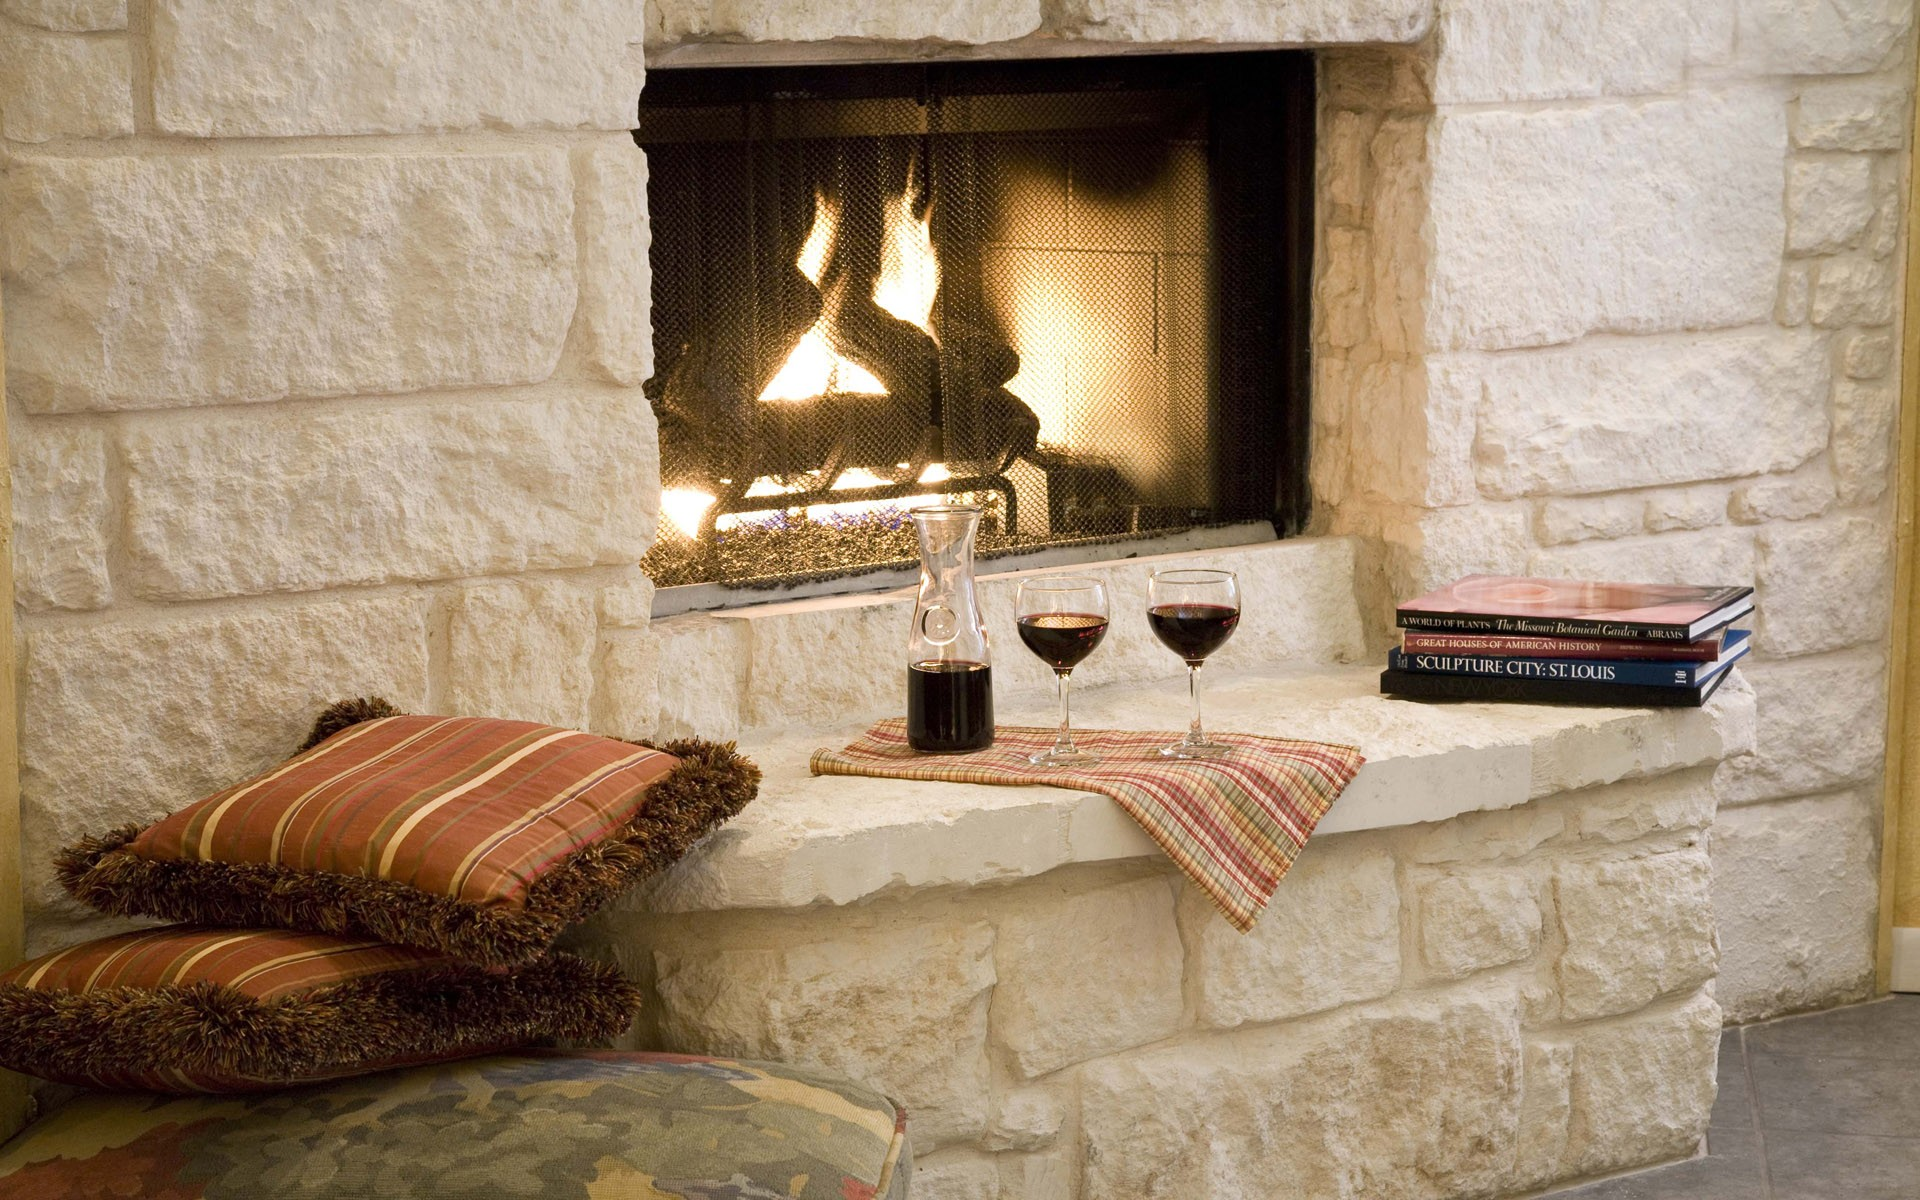 Free Fireplace Wallpaper: Fireplace Wallpaper ·① Download Free Stunning HD